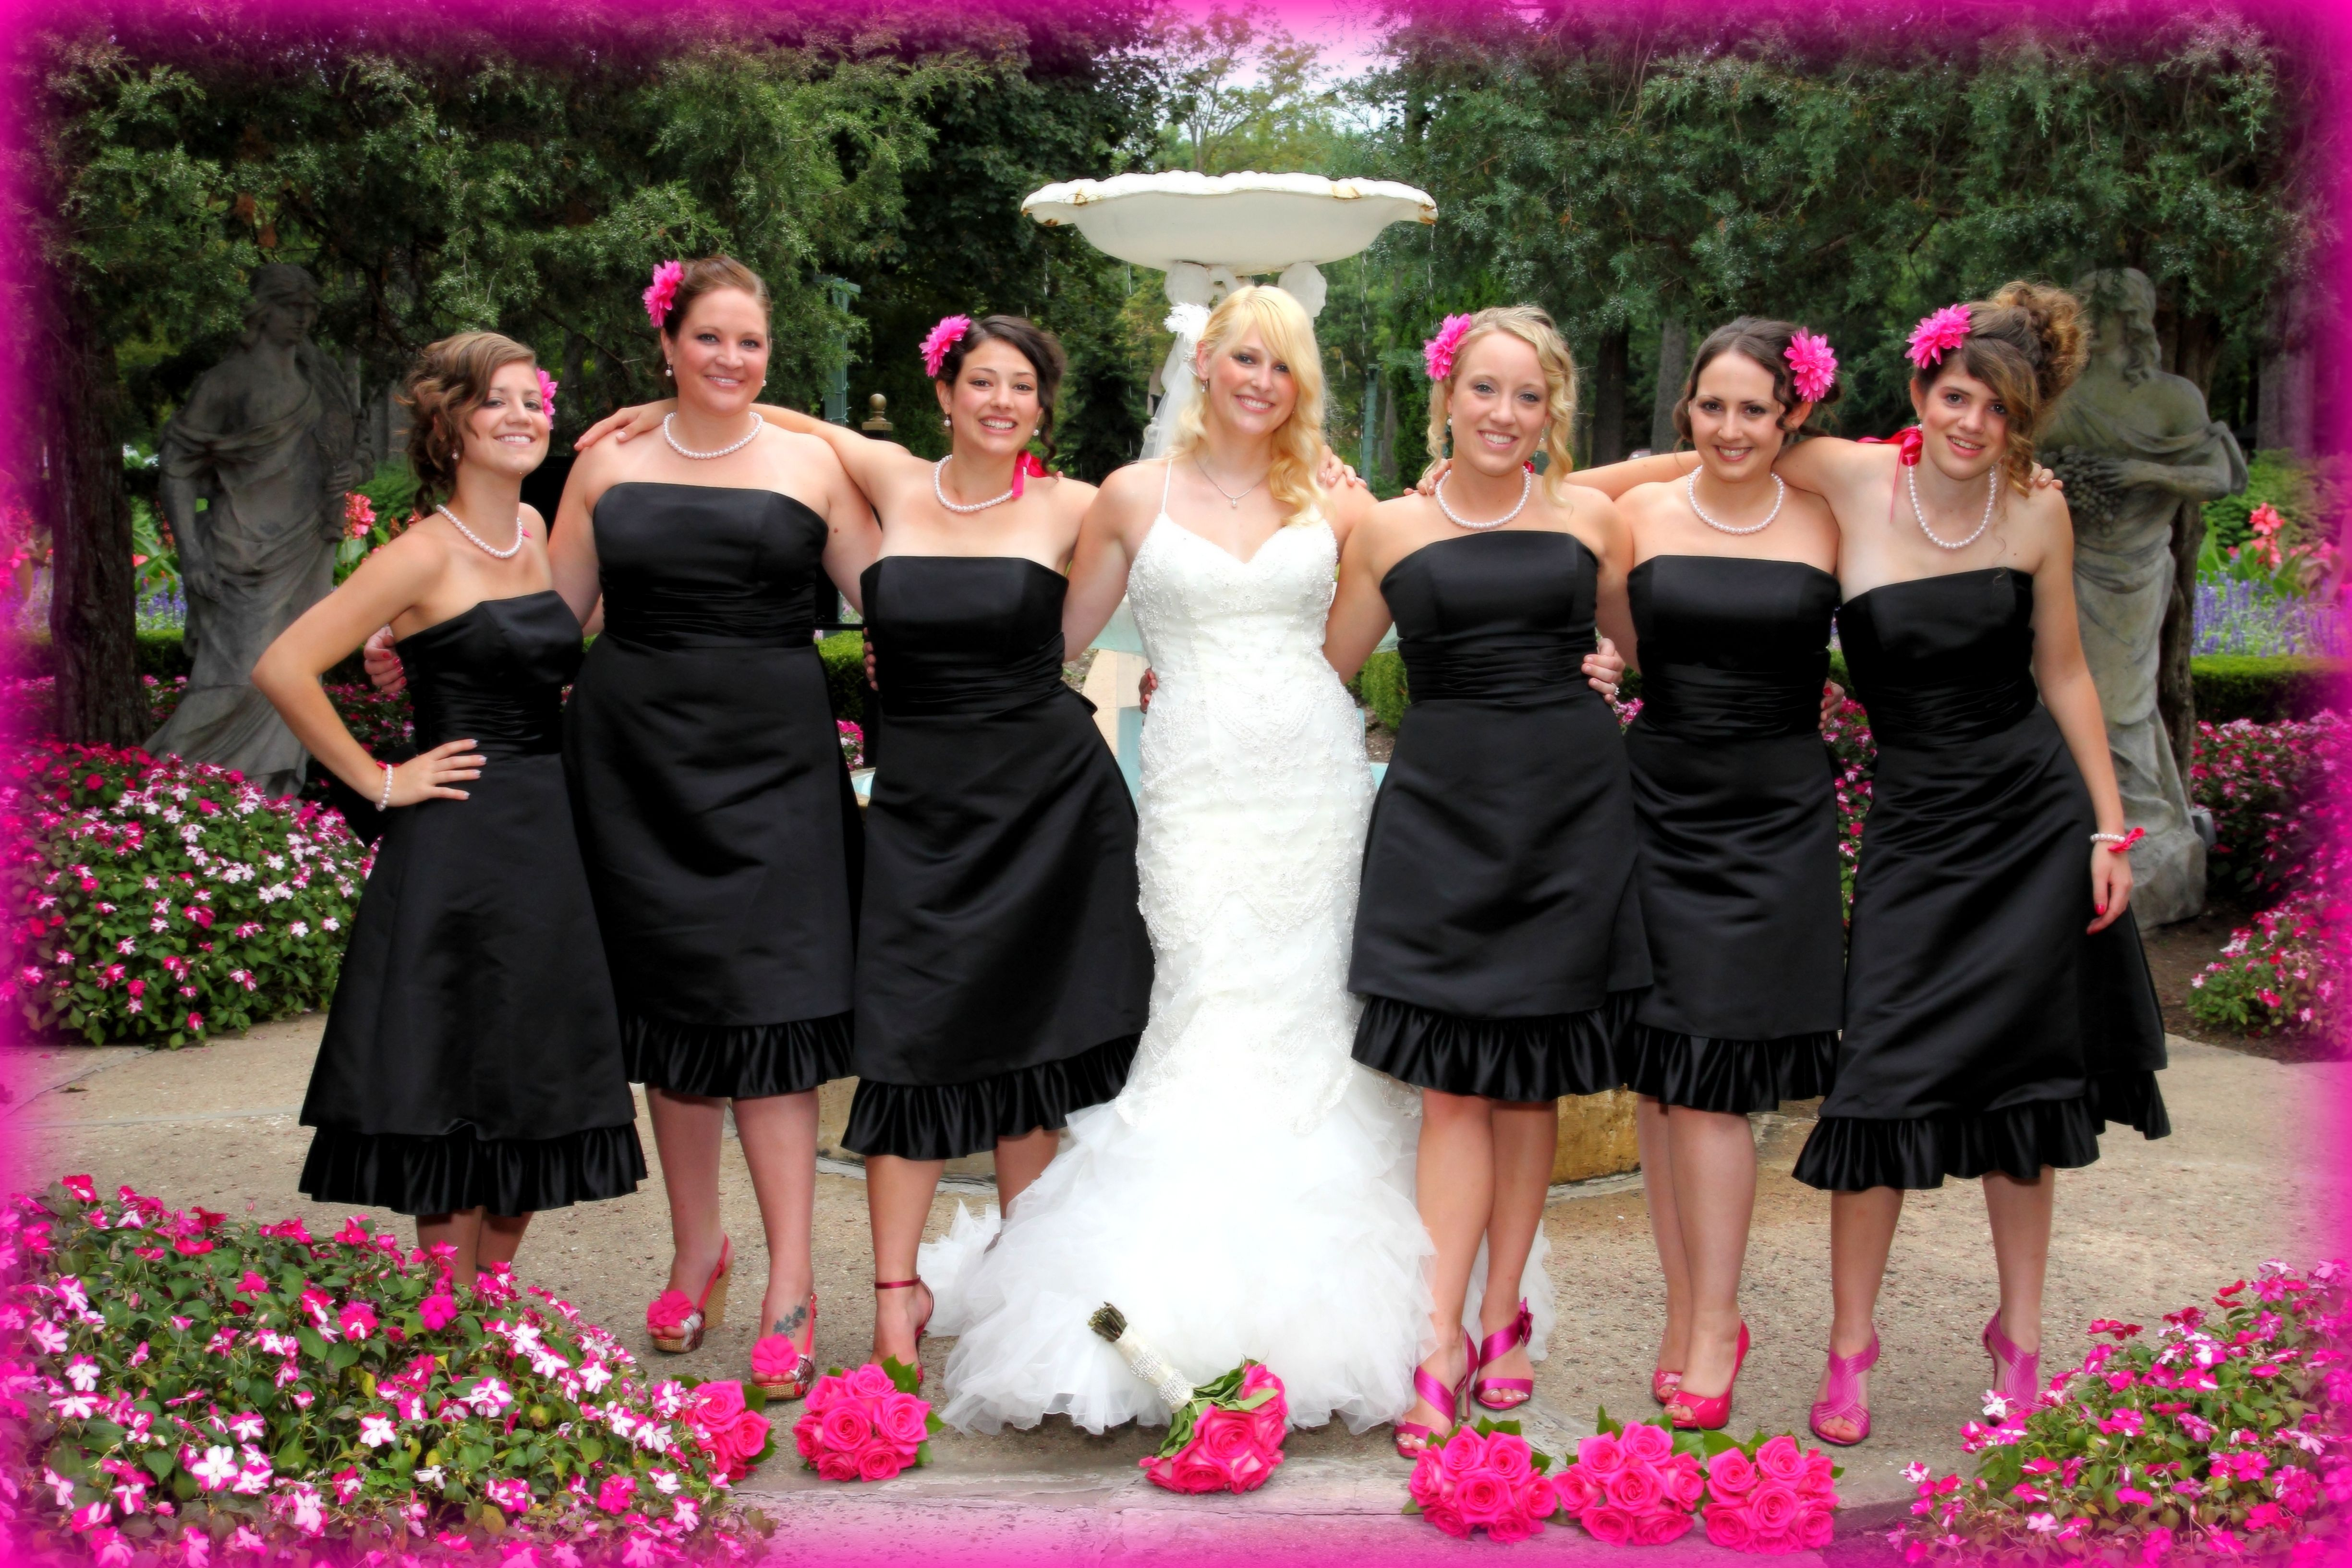 Like How They Have The Plain Black Dress With Pink Shoes And Flower Black Plain Dress Cute Wedding Ideas Black Wedding [ 3265 x 4898 Pixel ]